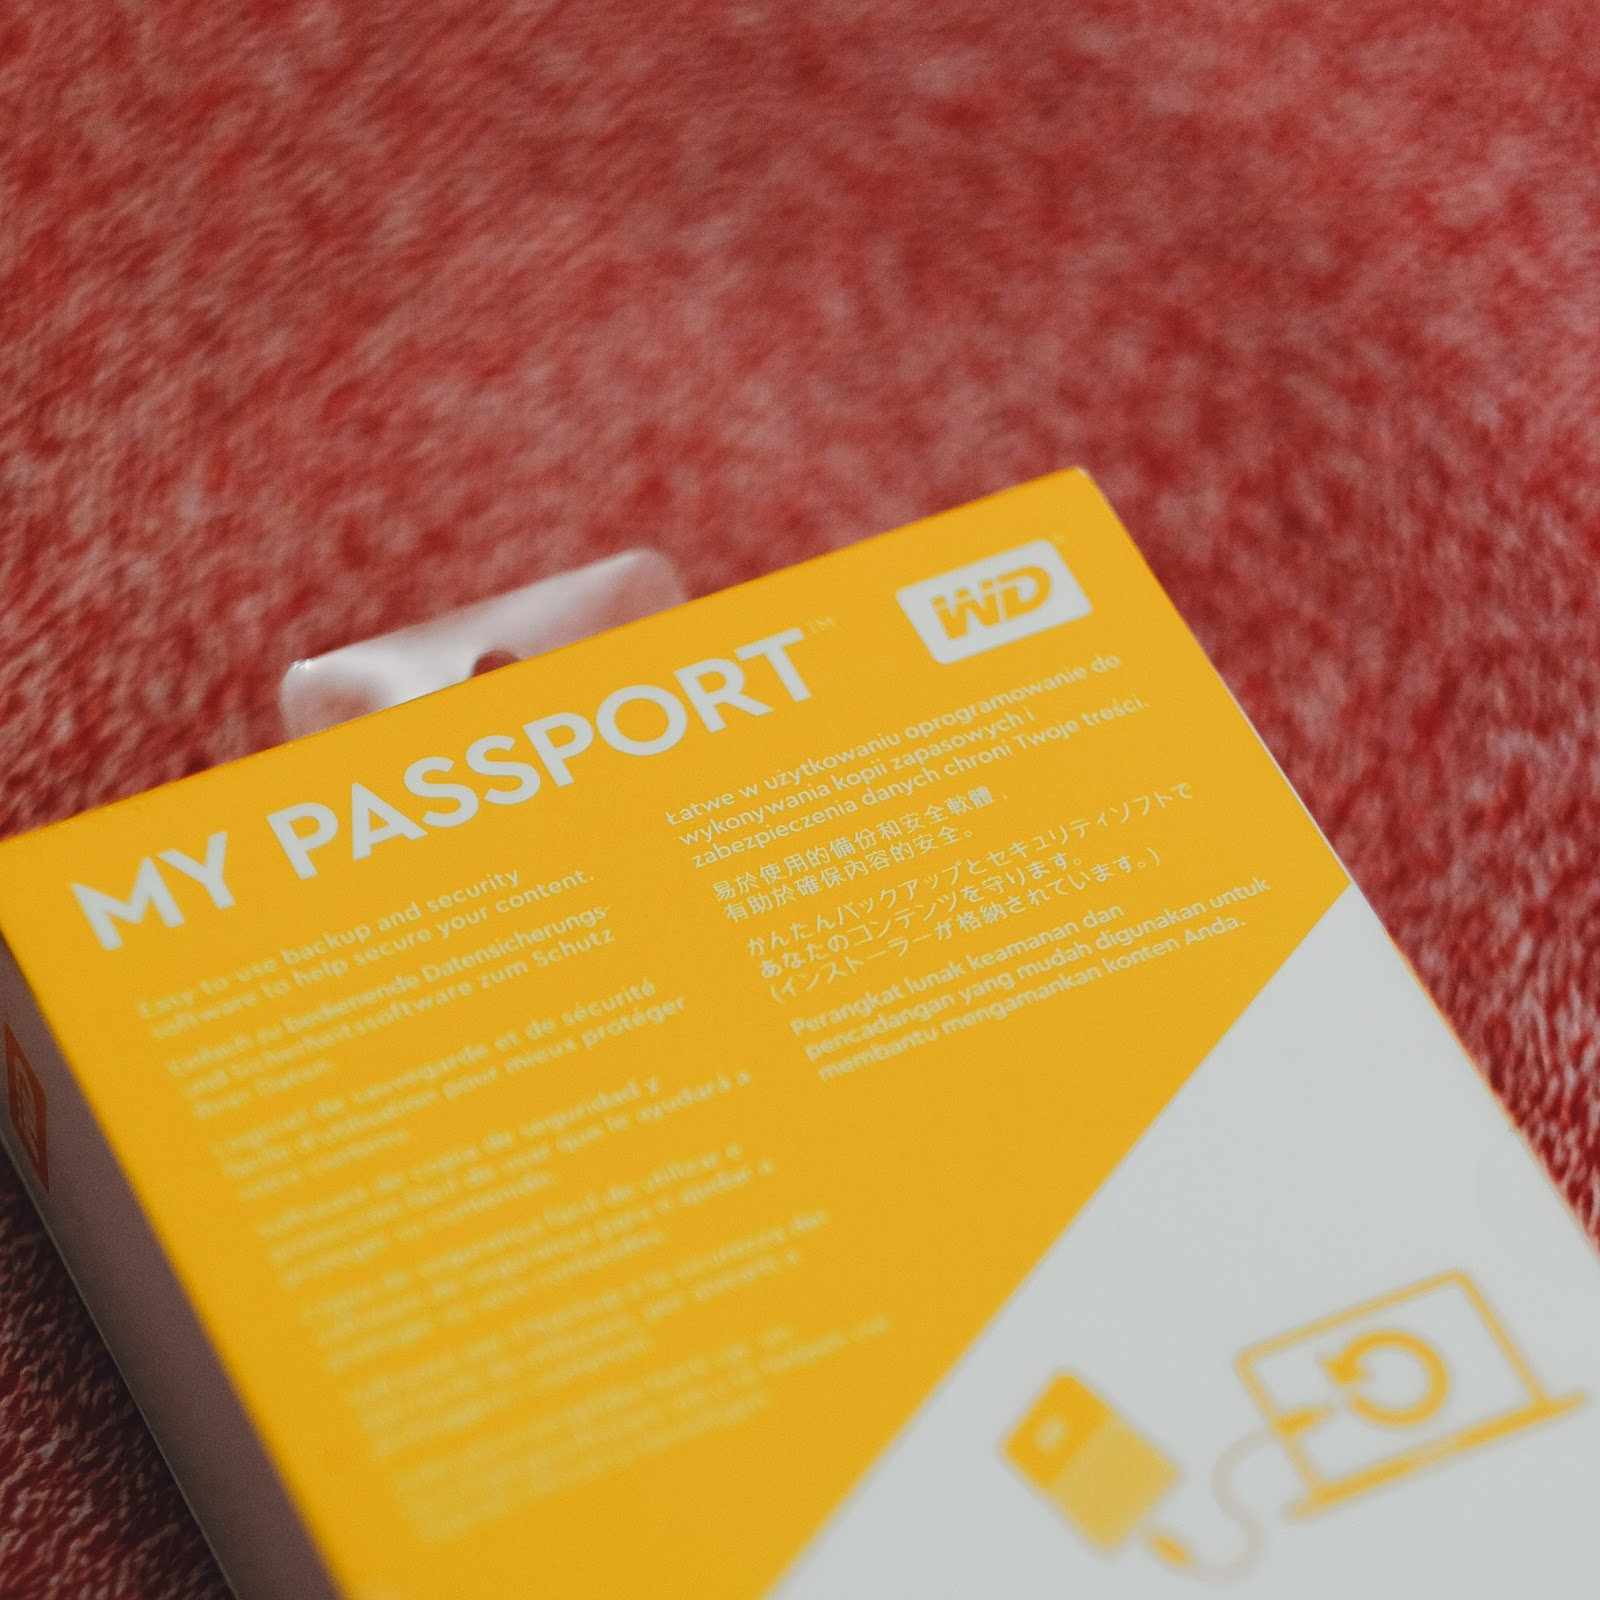 THE NEW WD PASSPORT - eatandtreats - Indonesian Food and